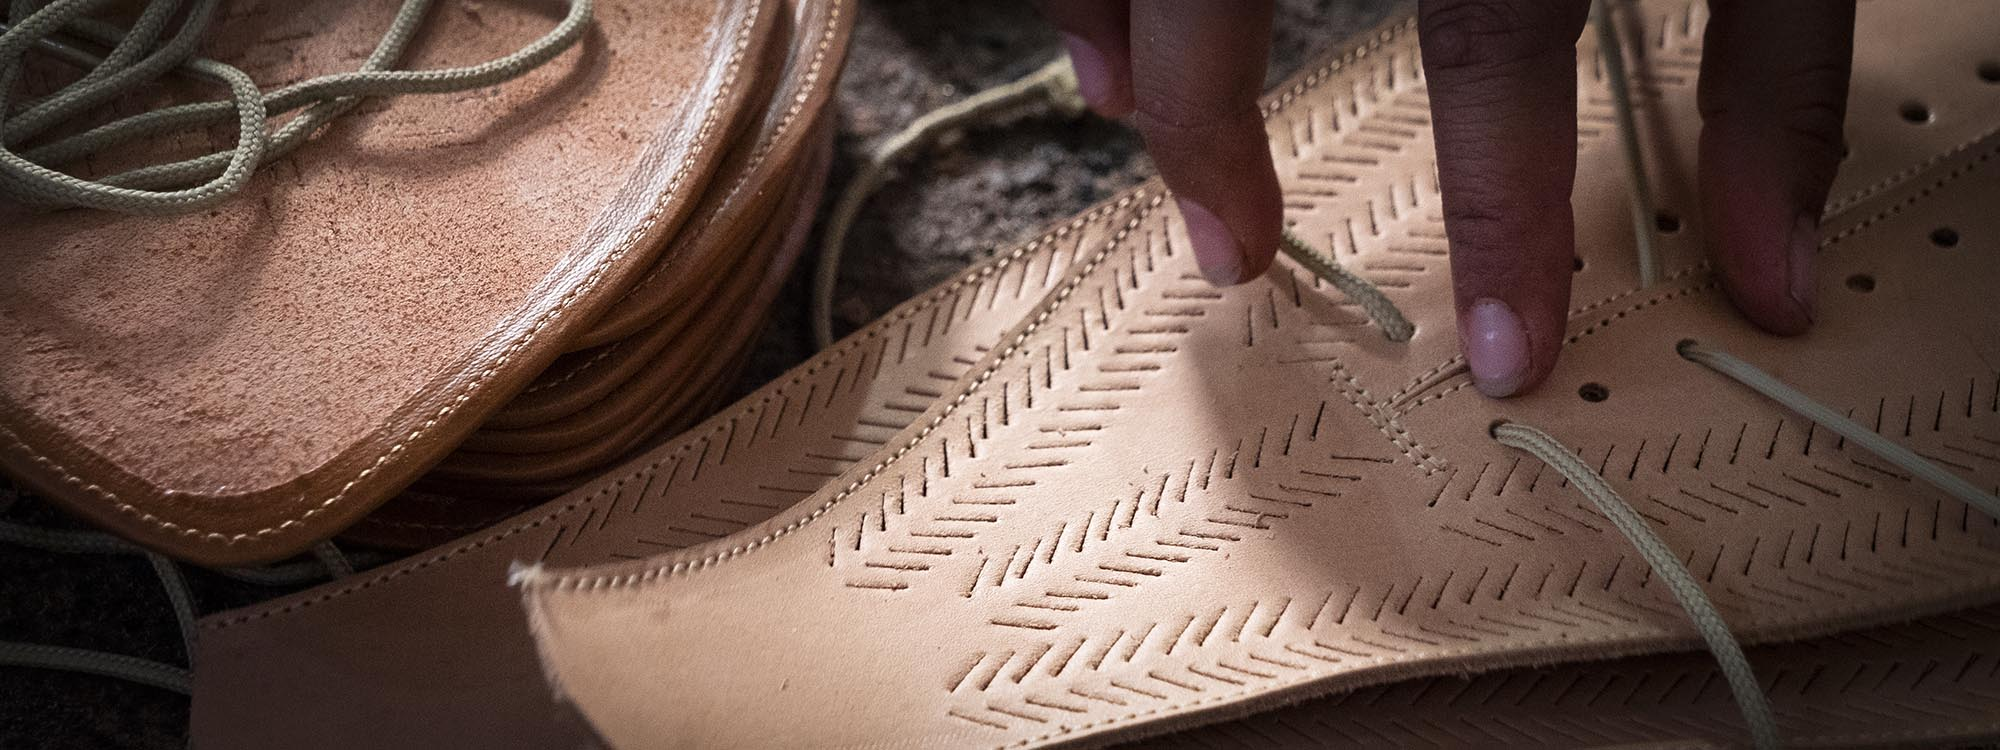 Sustainably made shoes in Mexico